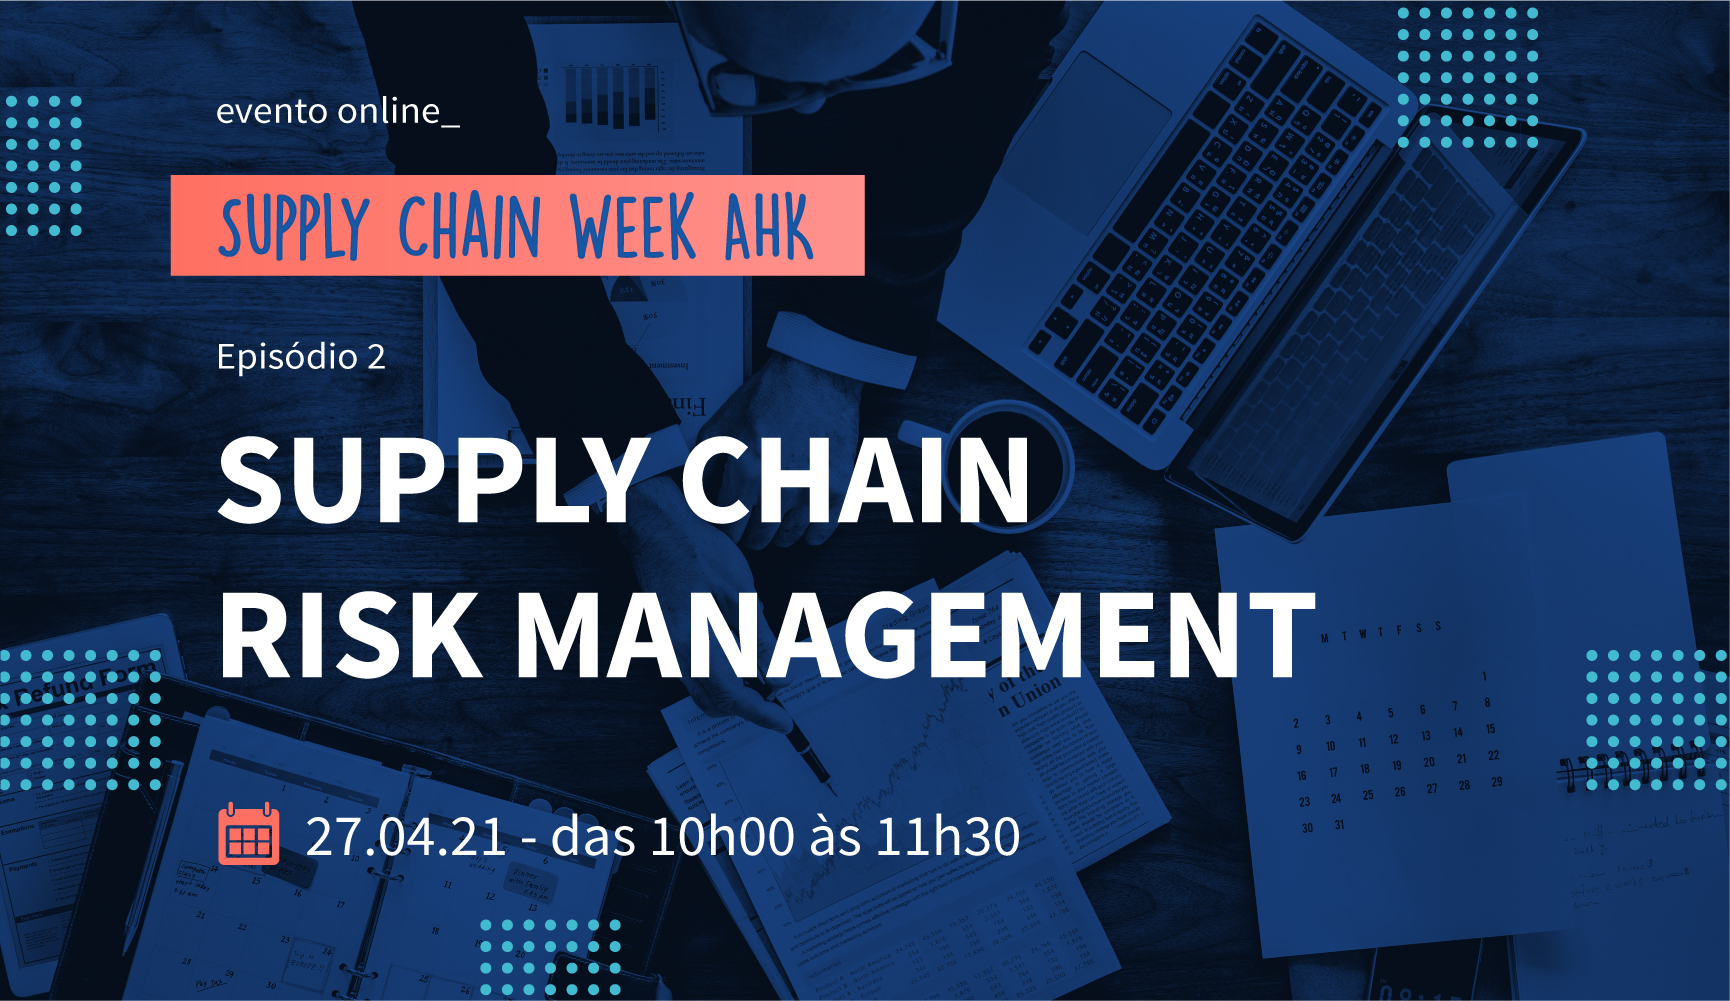 Supply Chain Week AHK | Episódio 2 - Supply Chain Risk Management